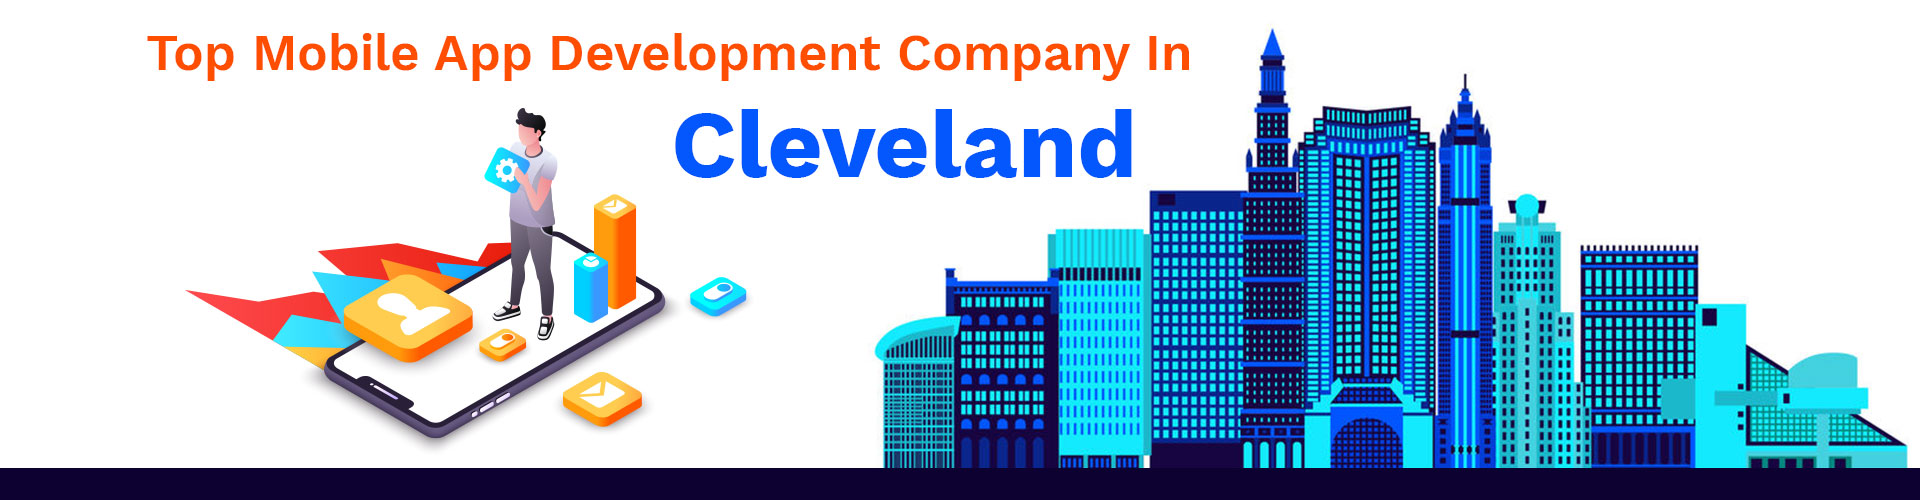 mobile app development company cleveland